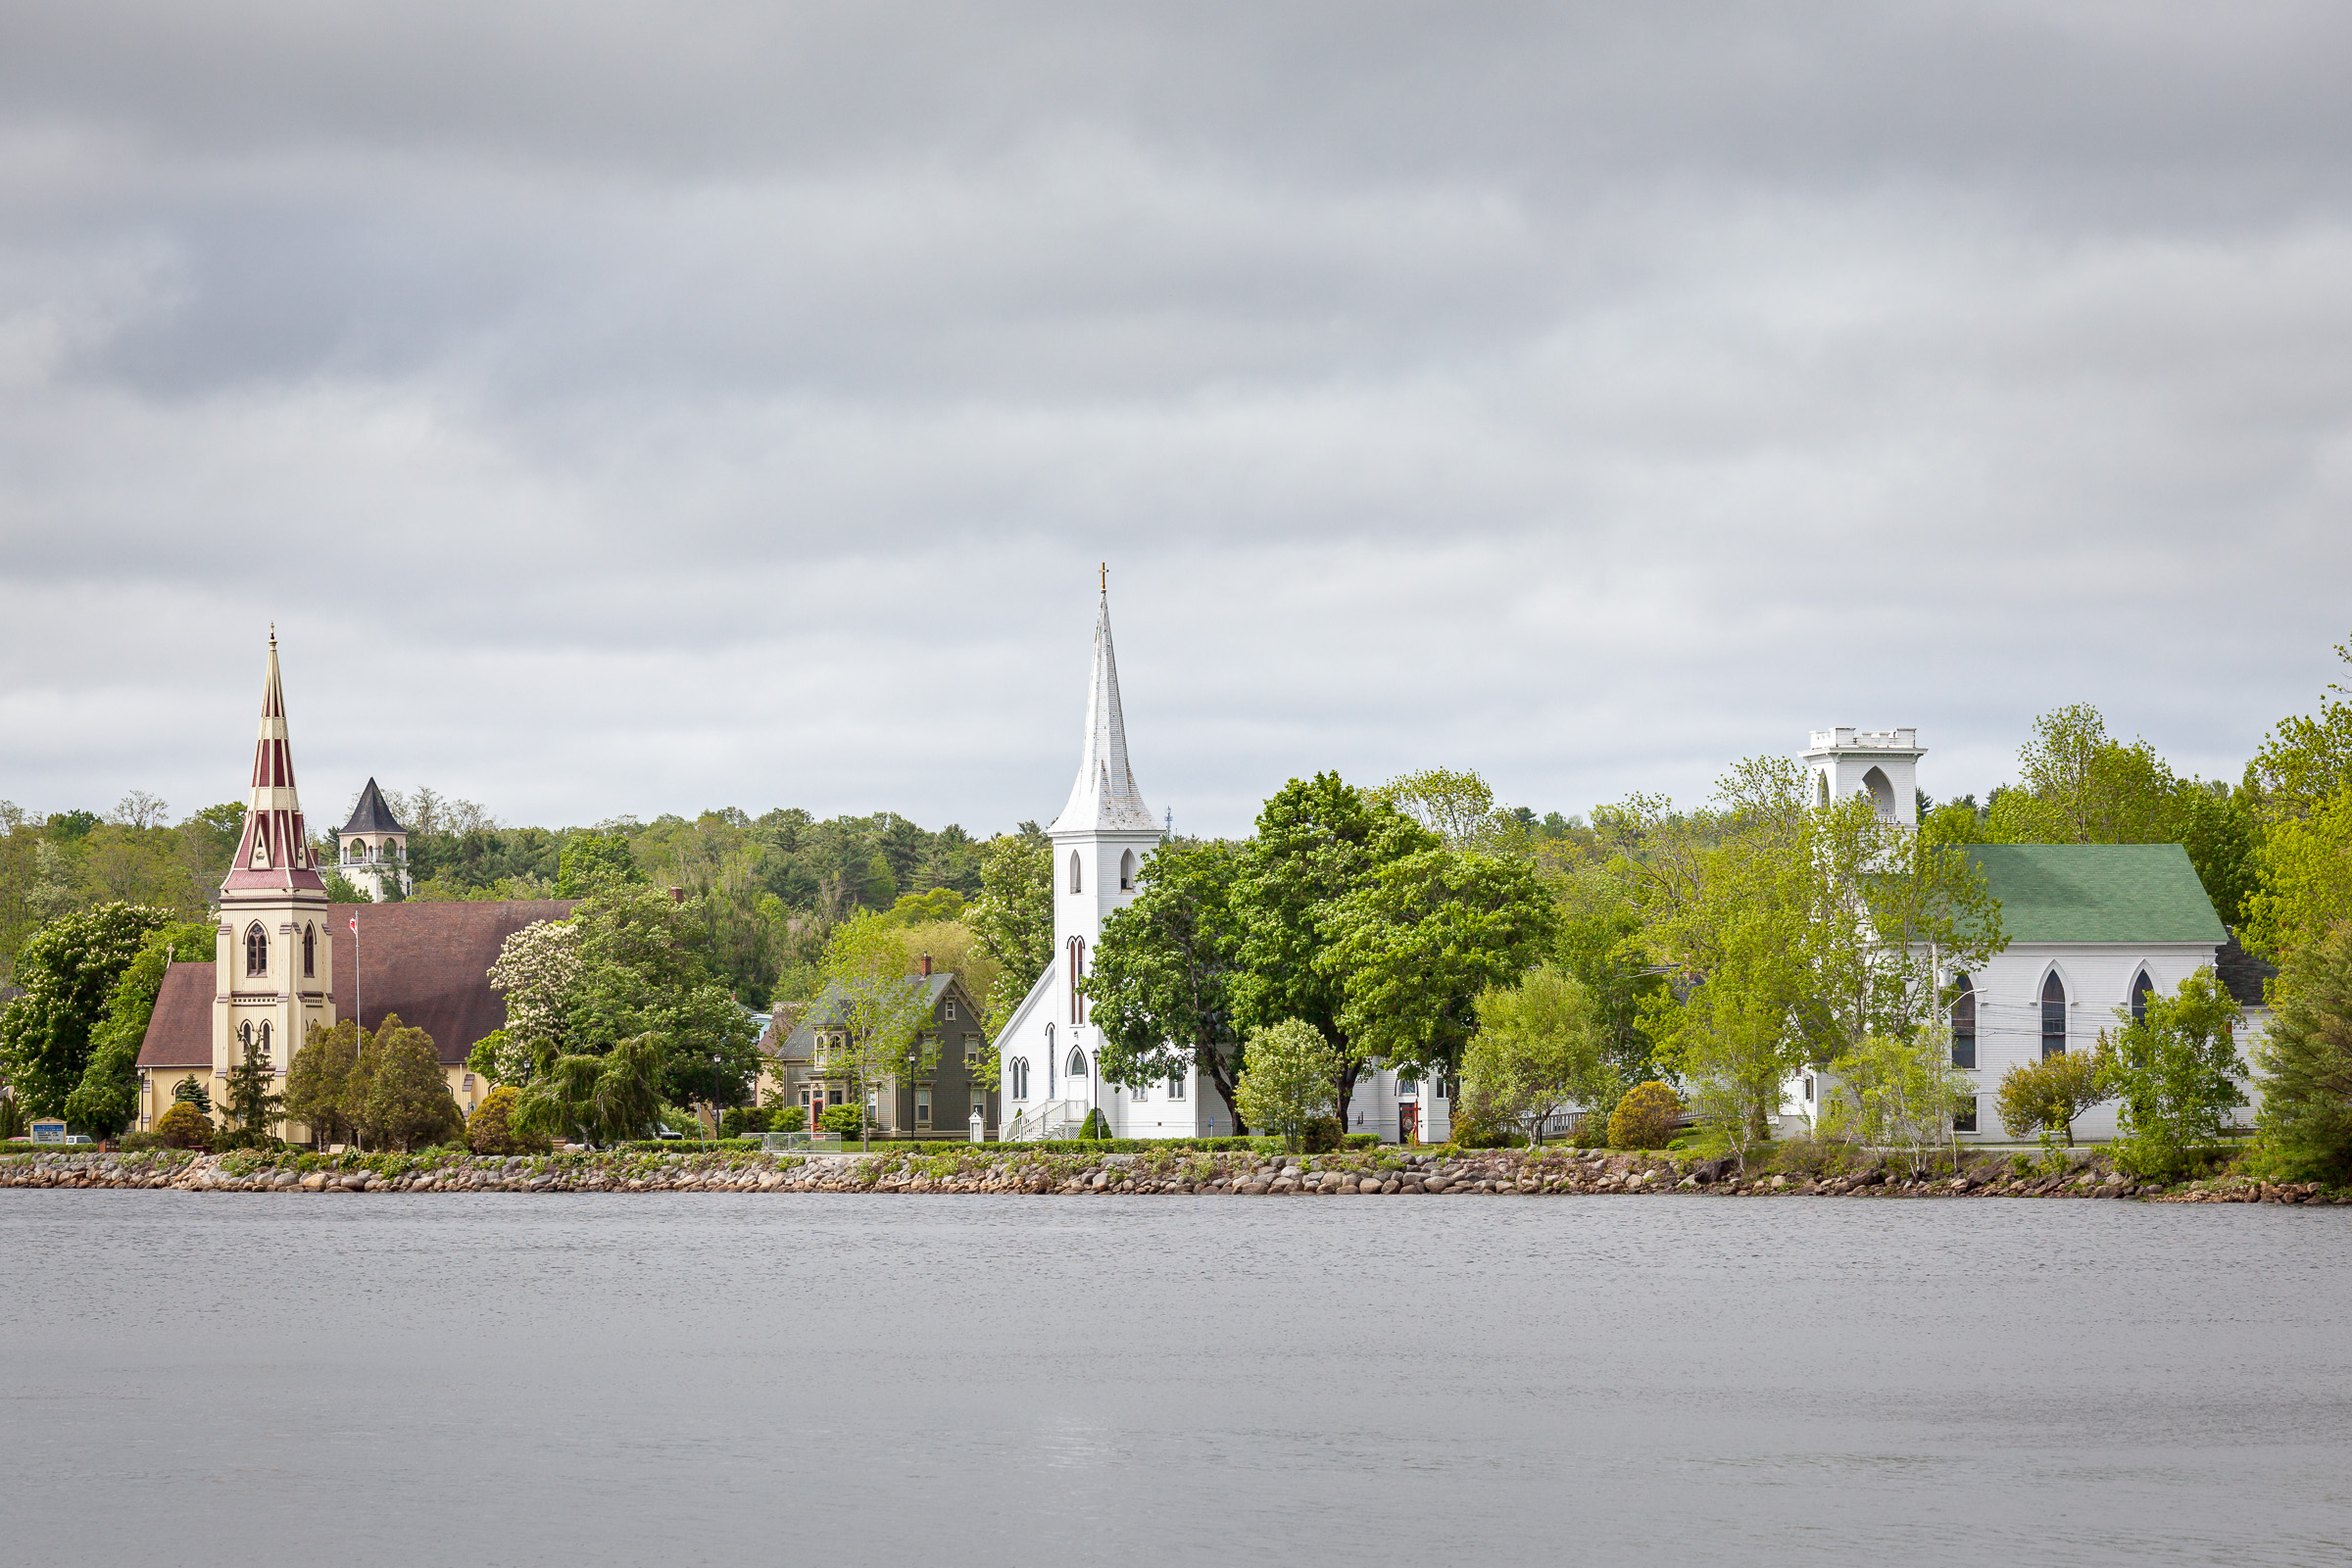 Mahone Bay, Nova Scotia, Canada